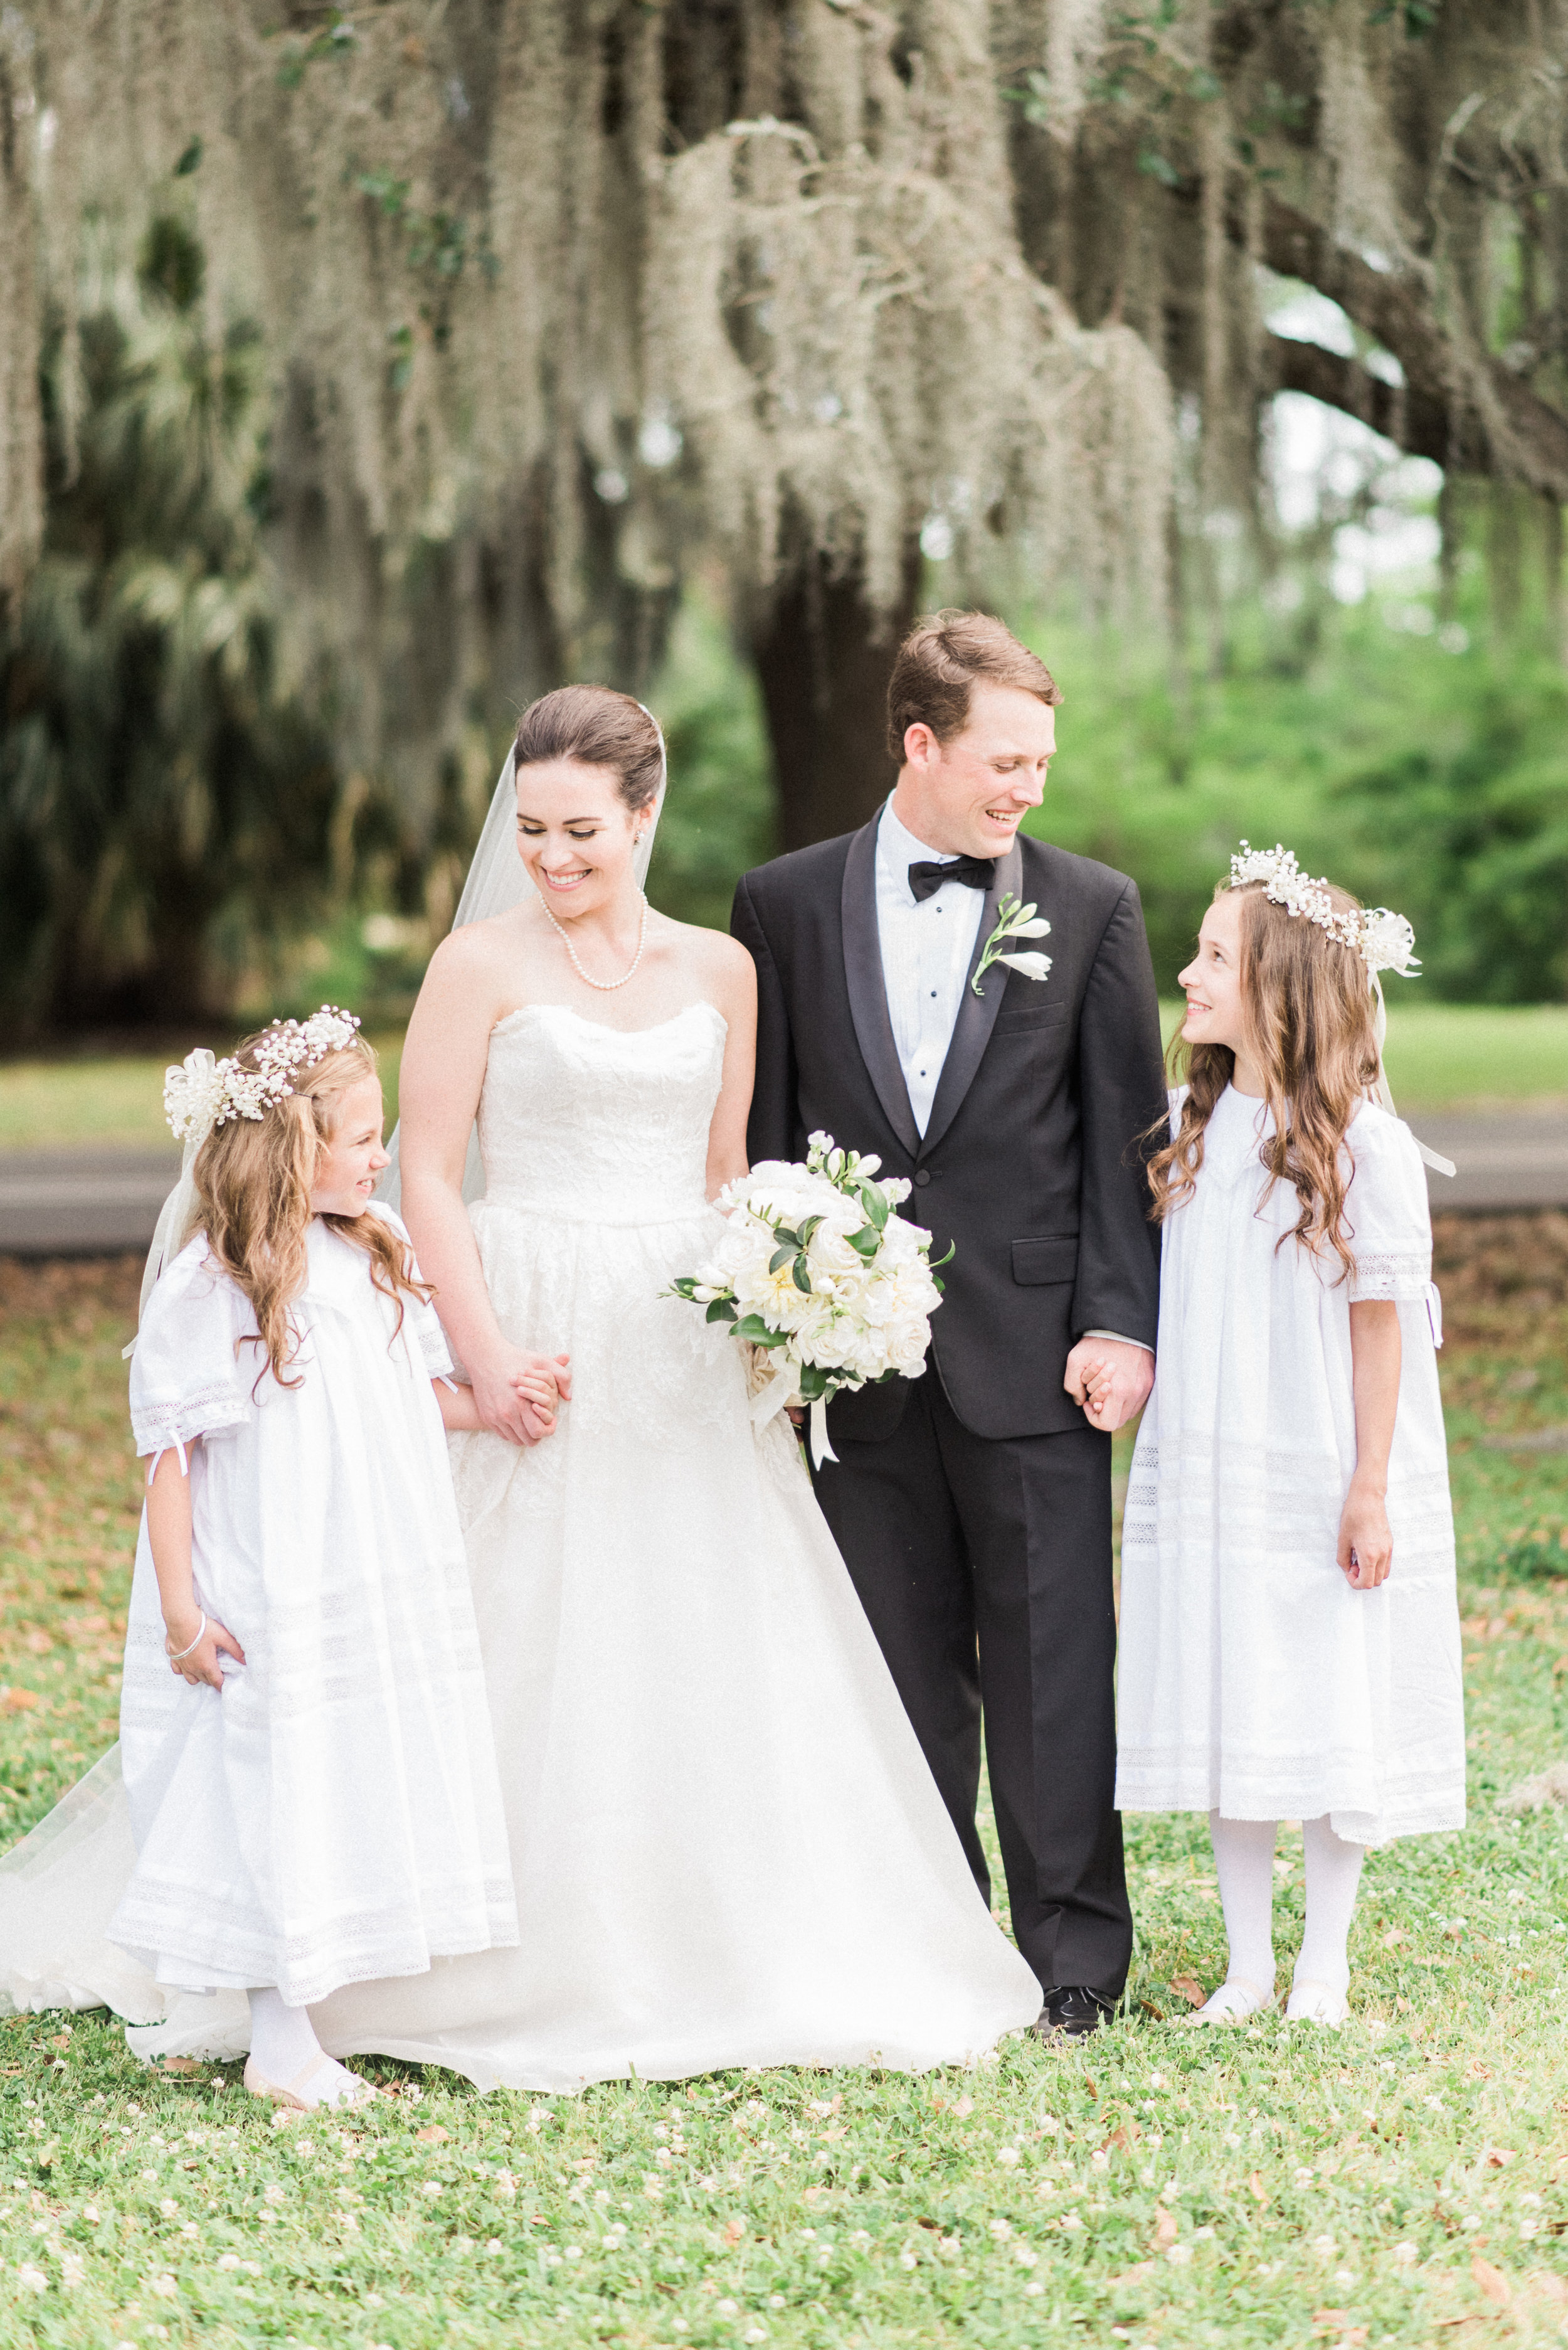 Southern Fete, Southern Wedding, Family, Flower girls, Bride and Groom, Lindsey Rogers Photography